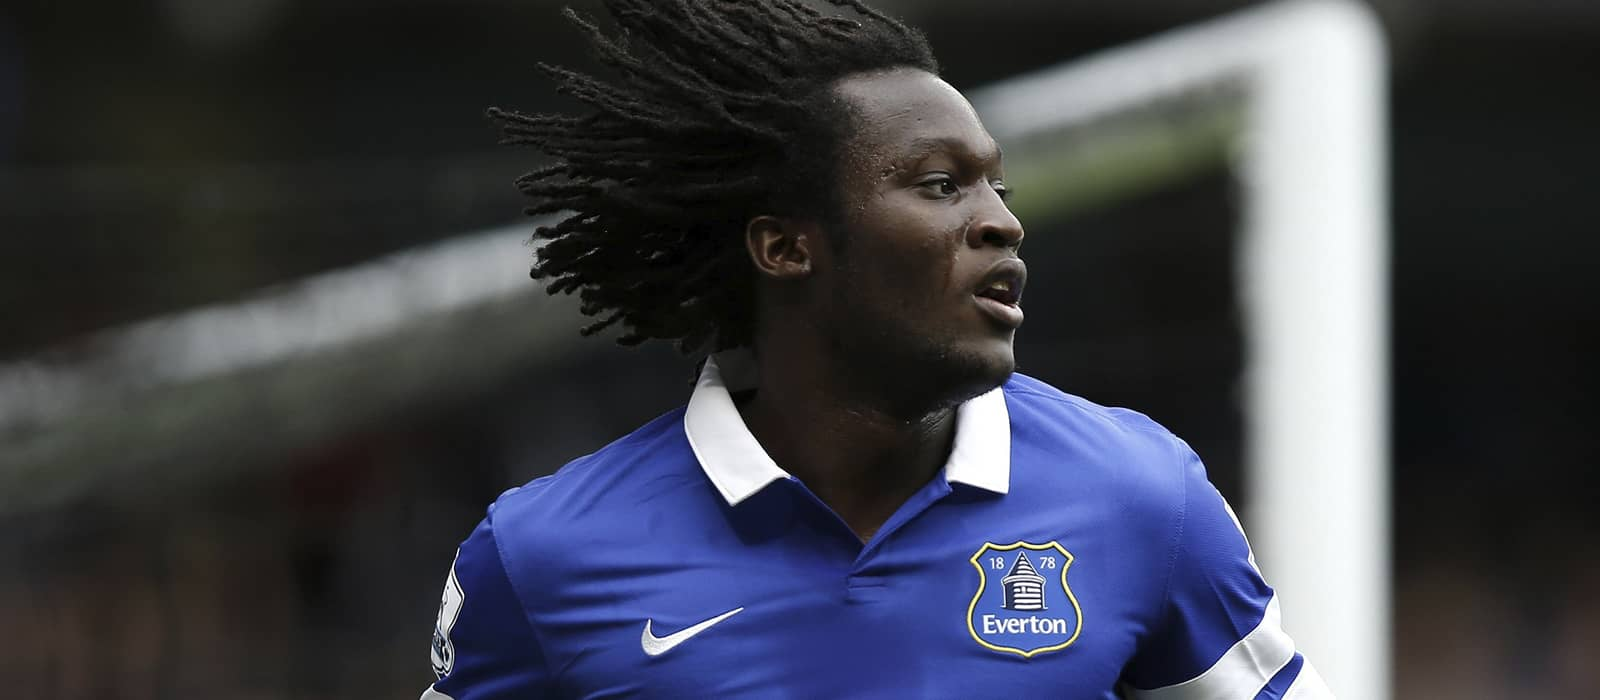 Romelu Lukaku's camp want him to join Manchester United instead of Chelsea – report